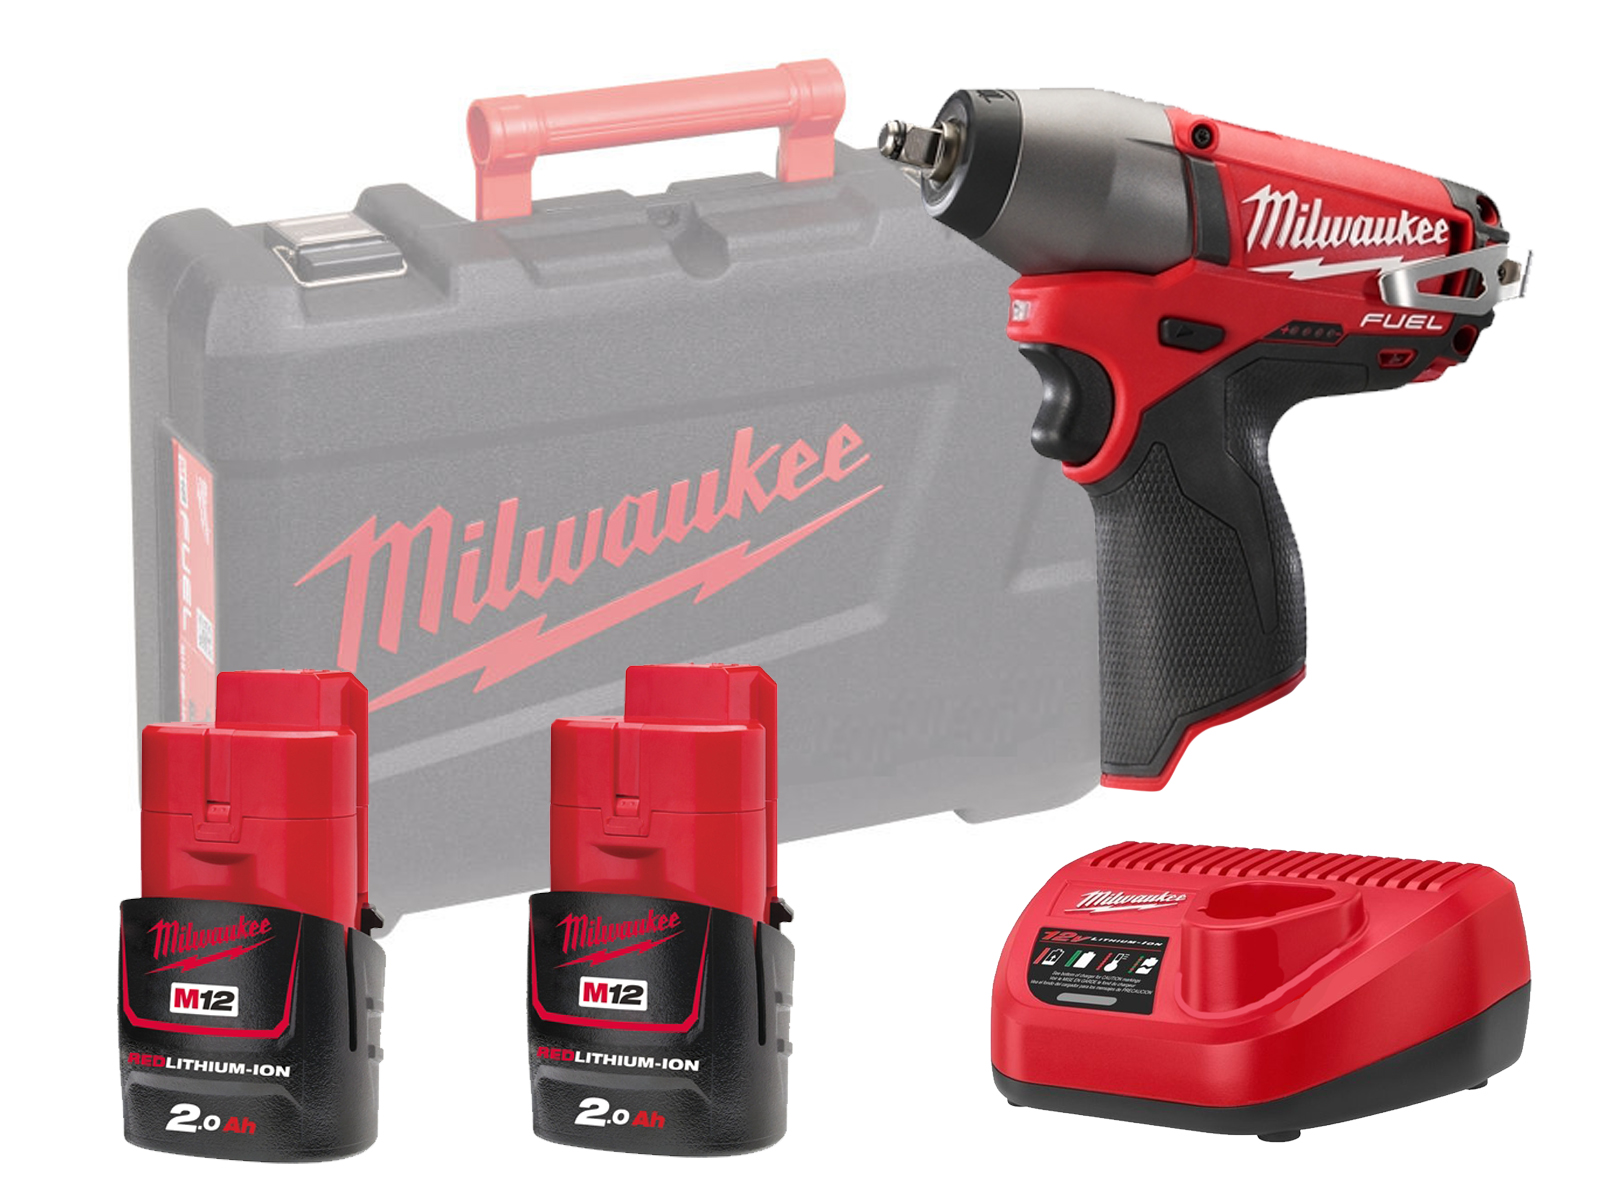 "MILWAUKEE 12V FUEL BRUSHLESS IMPACT WRENCH 1/2"" - M12CIW12 - 2.0AH PACK"